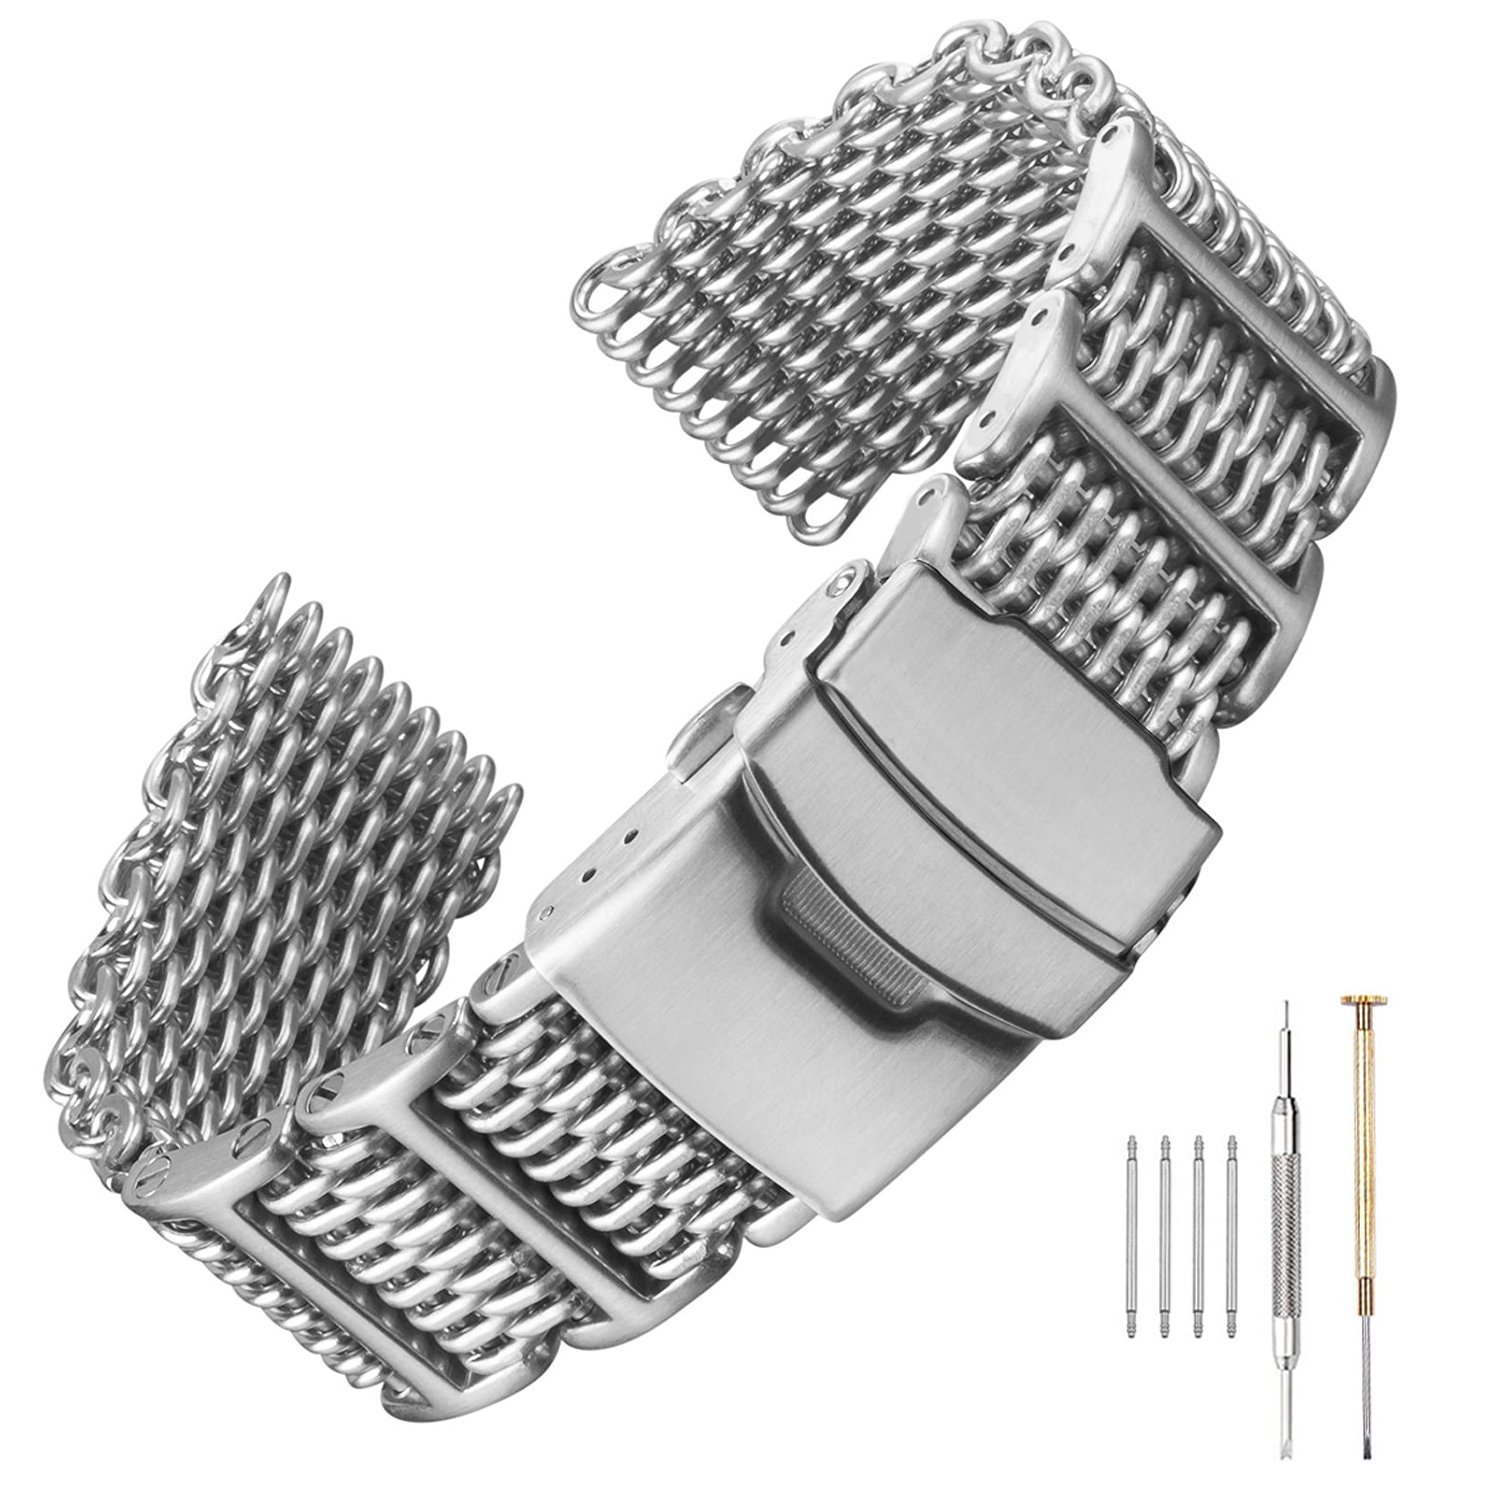 20/22/24mm H-Link Shark Stainless Steel Mesh Strap Wrist Watch Band Heavy Duty Diving Watch Strap Men Women